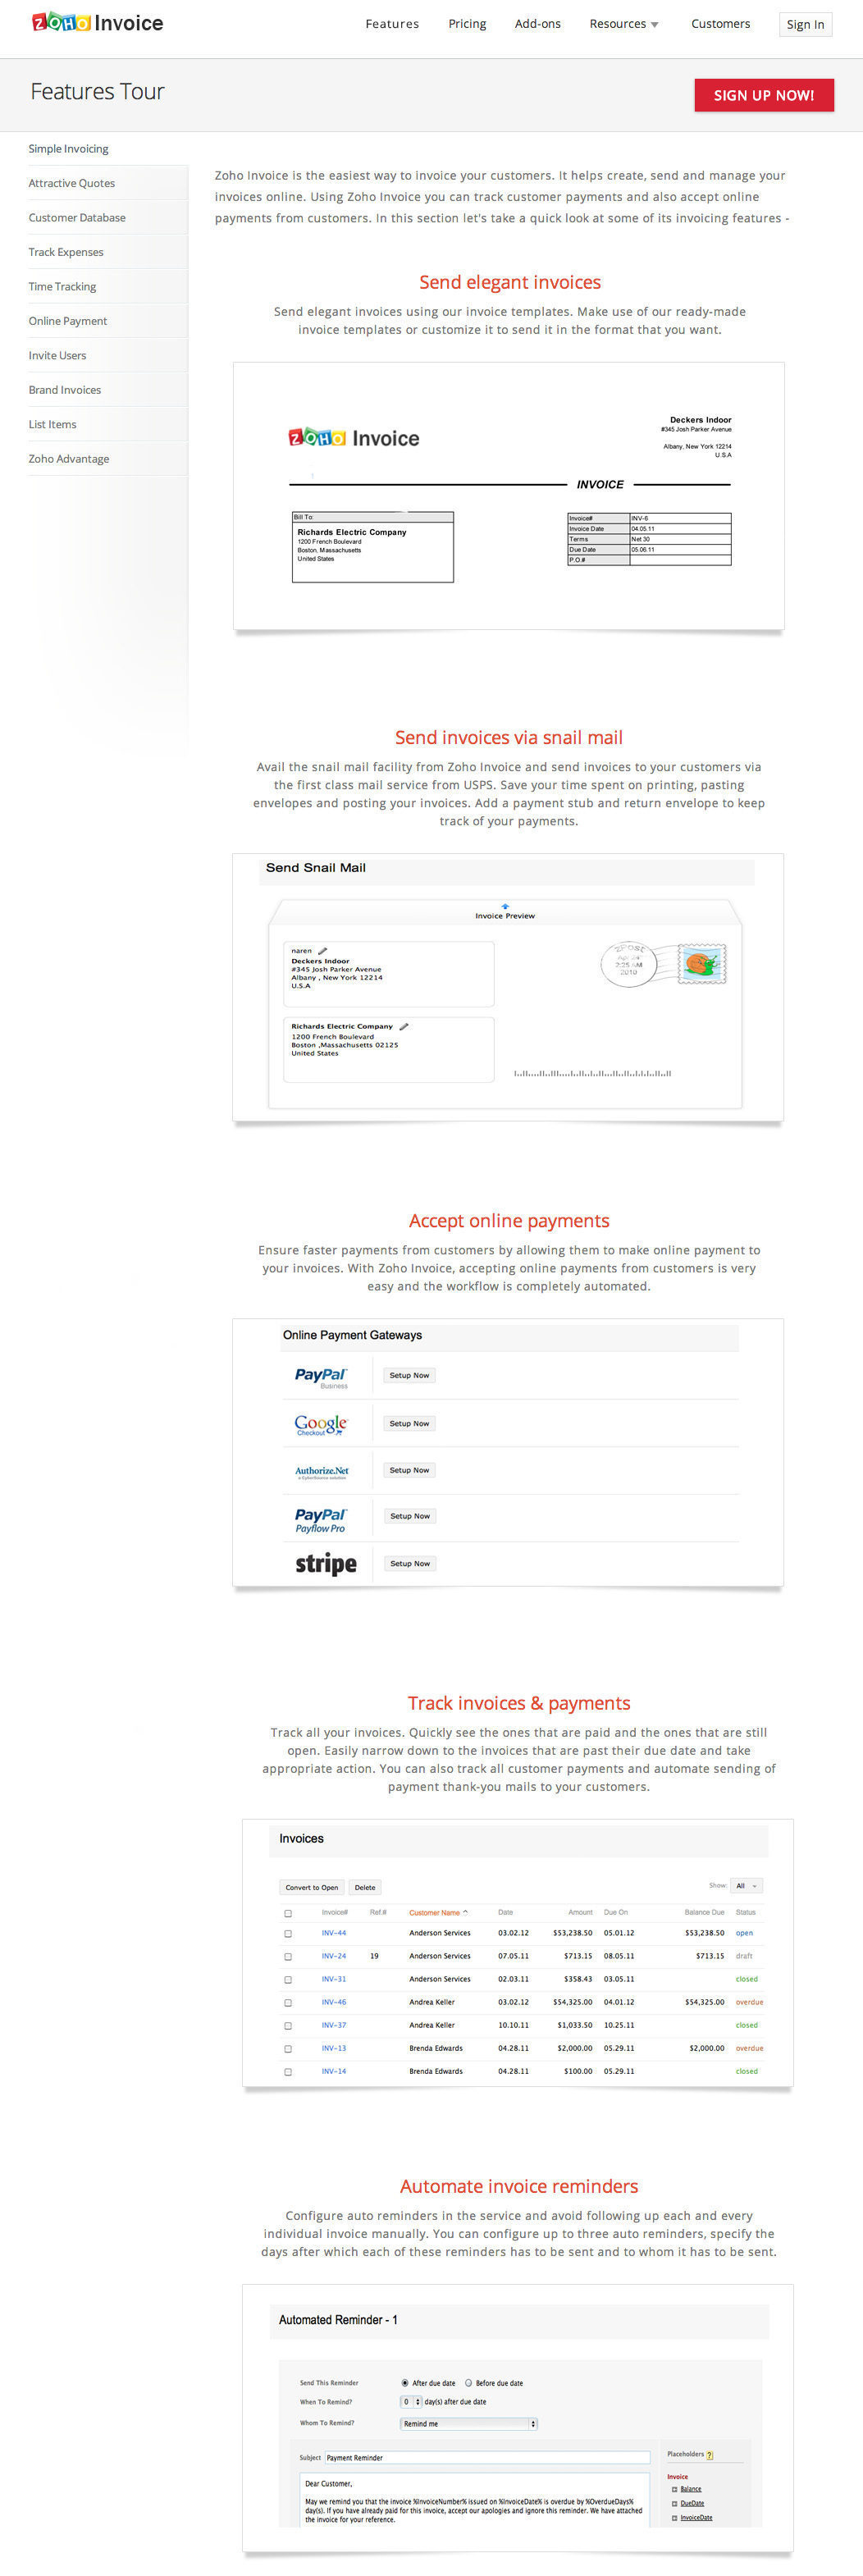 Hius  Pleasant Top  Complaints And Reviews About Zoho Invoice With Lovable Zoho Invoice Pricing Zoho Invoice  Simple Invoicing  With Amazing Invoice Def Also Printable Invoice Template In Addition Invoicing Templates And Shipping Invoice As Well As Email Invoice Additionally Free Blank Invoice From Consumeraffairscom With Hius  Lovable Top  Complaints And Reviews About Zoho Invoice With Amazing Zoho Invoice Pricing Zoho Invoice  Simple Invoicing  And Pleasant Invoice Def Also Printable Invoice Template In Addition Invoicing Templates From Consumeraffairscom